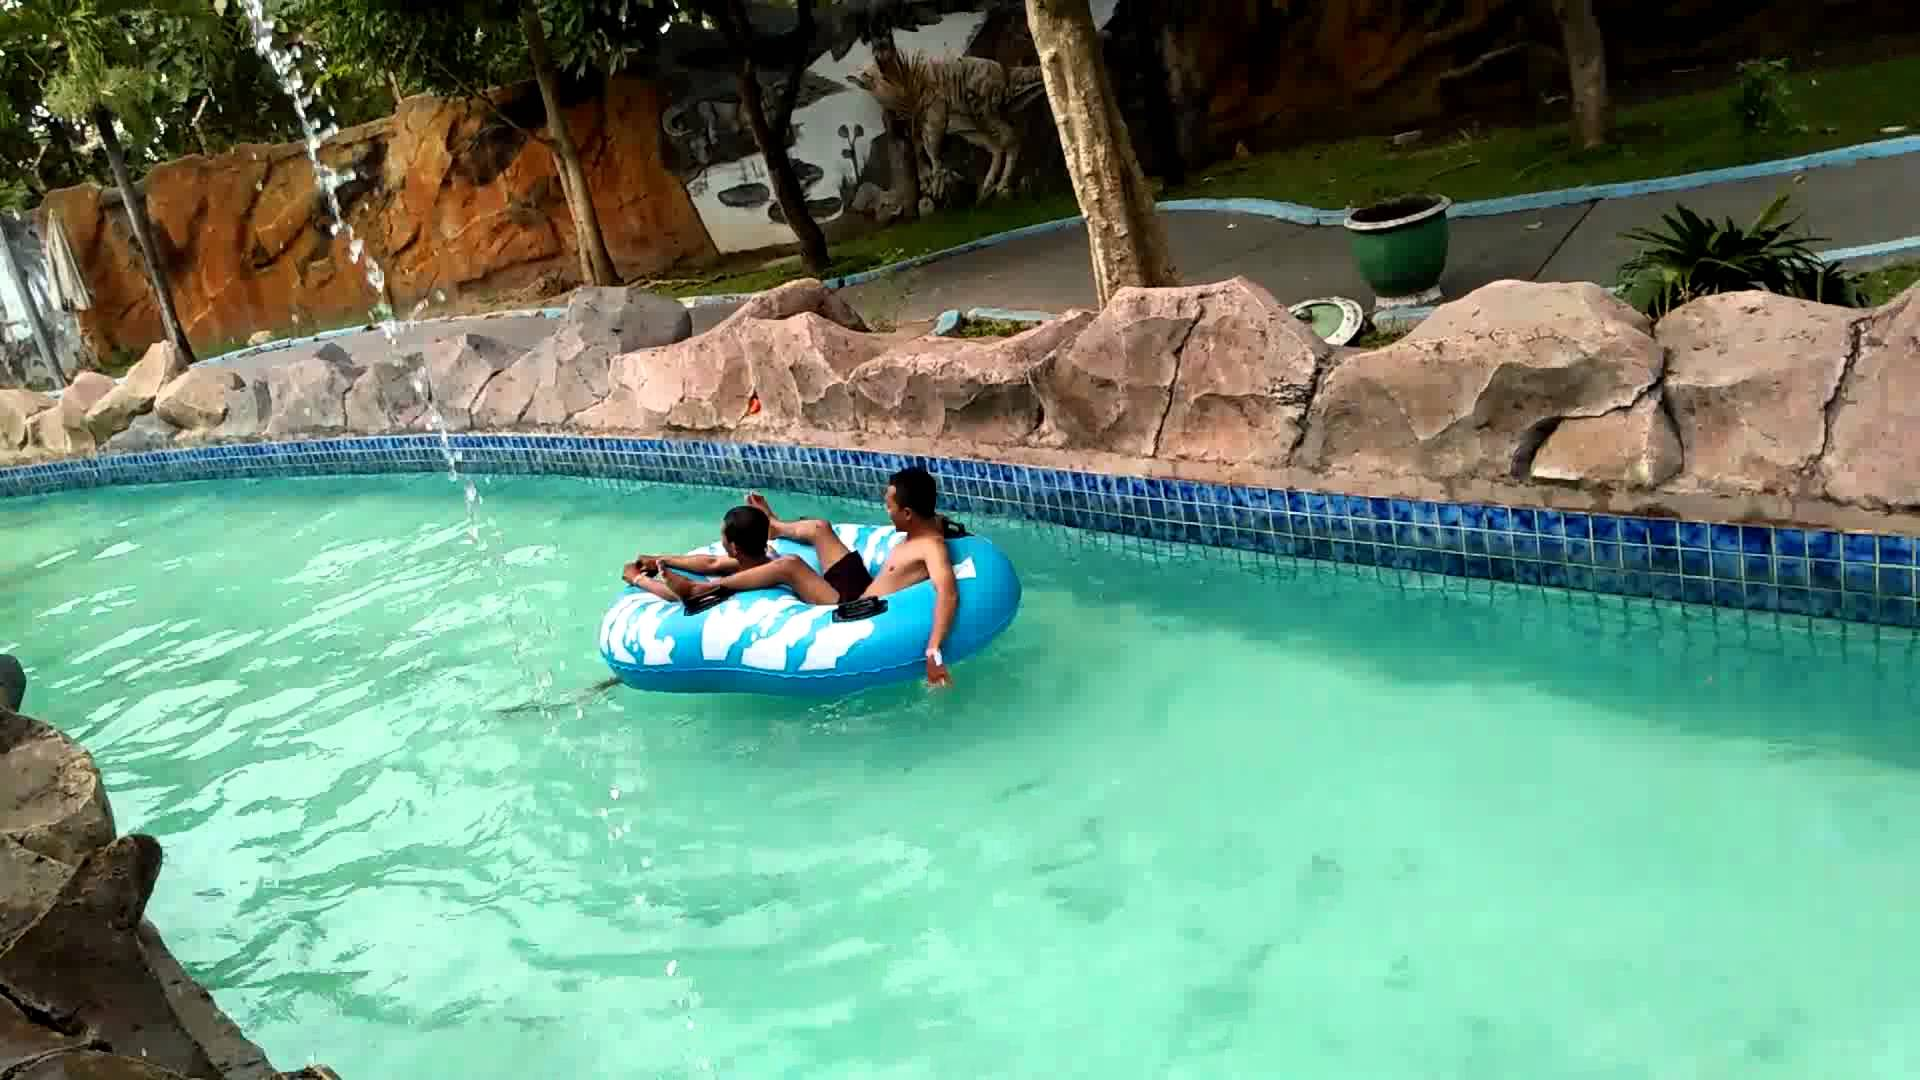 Legend Waterpark Kertosono Youtube Taman Air Kab Nganjuk